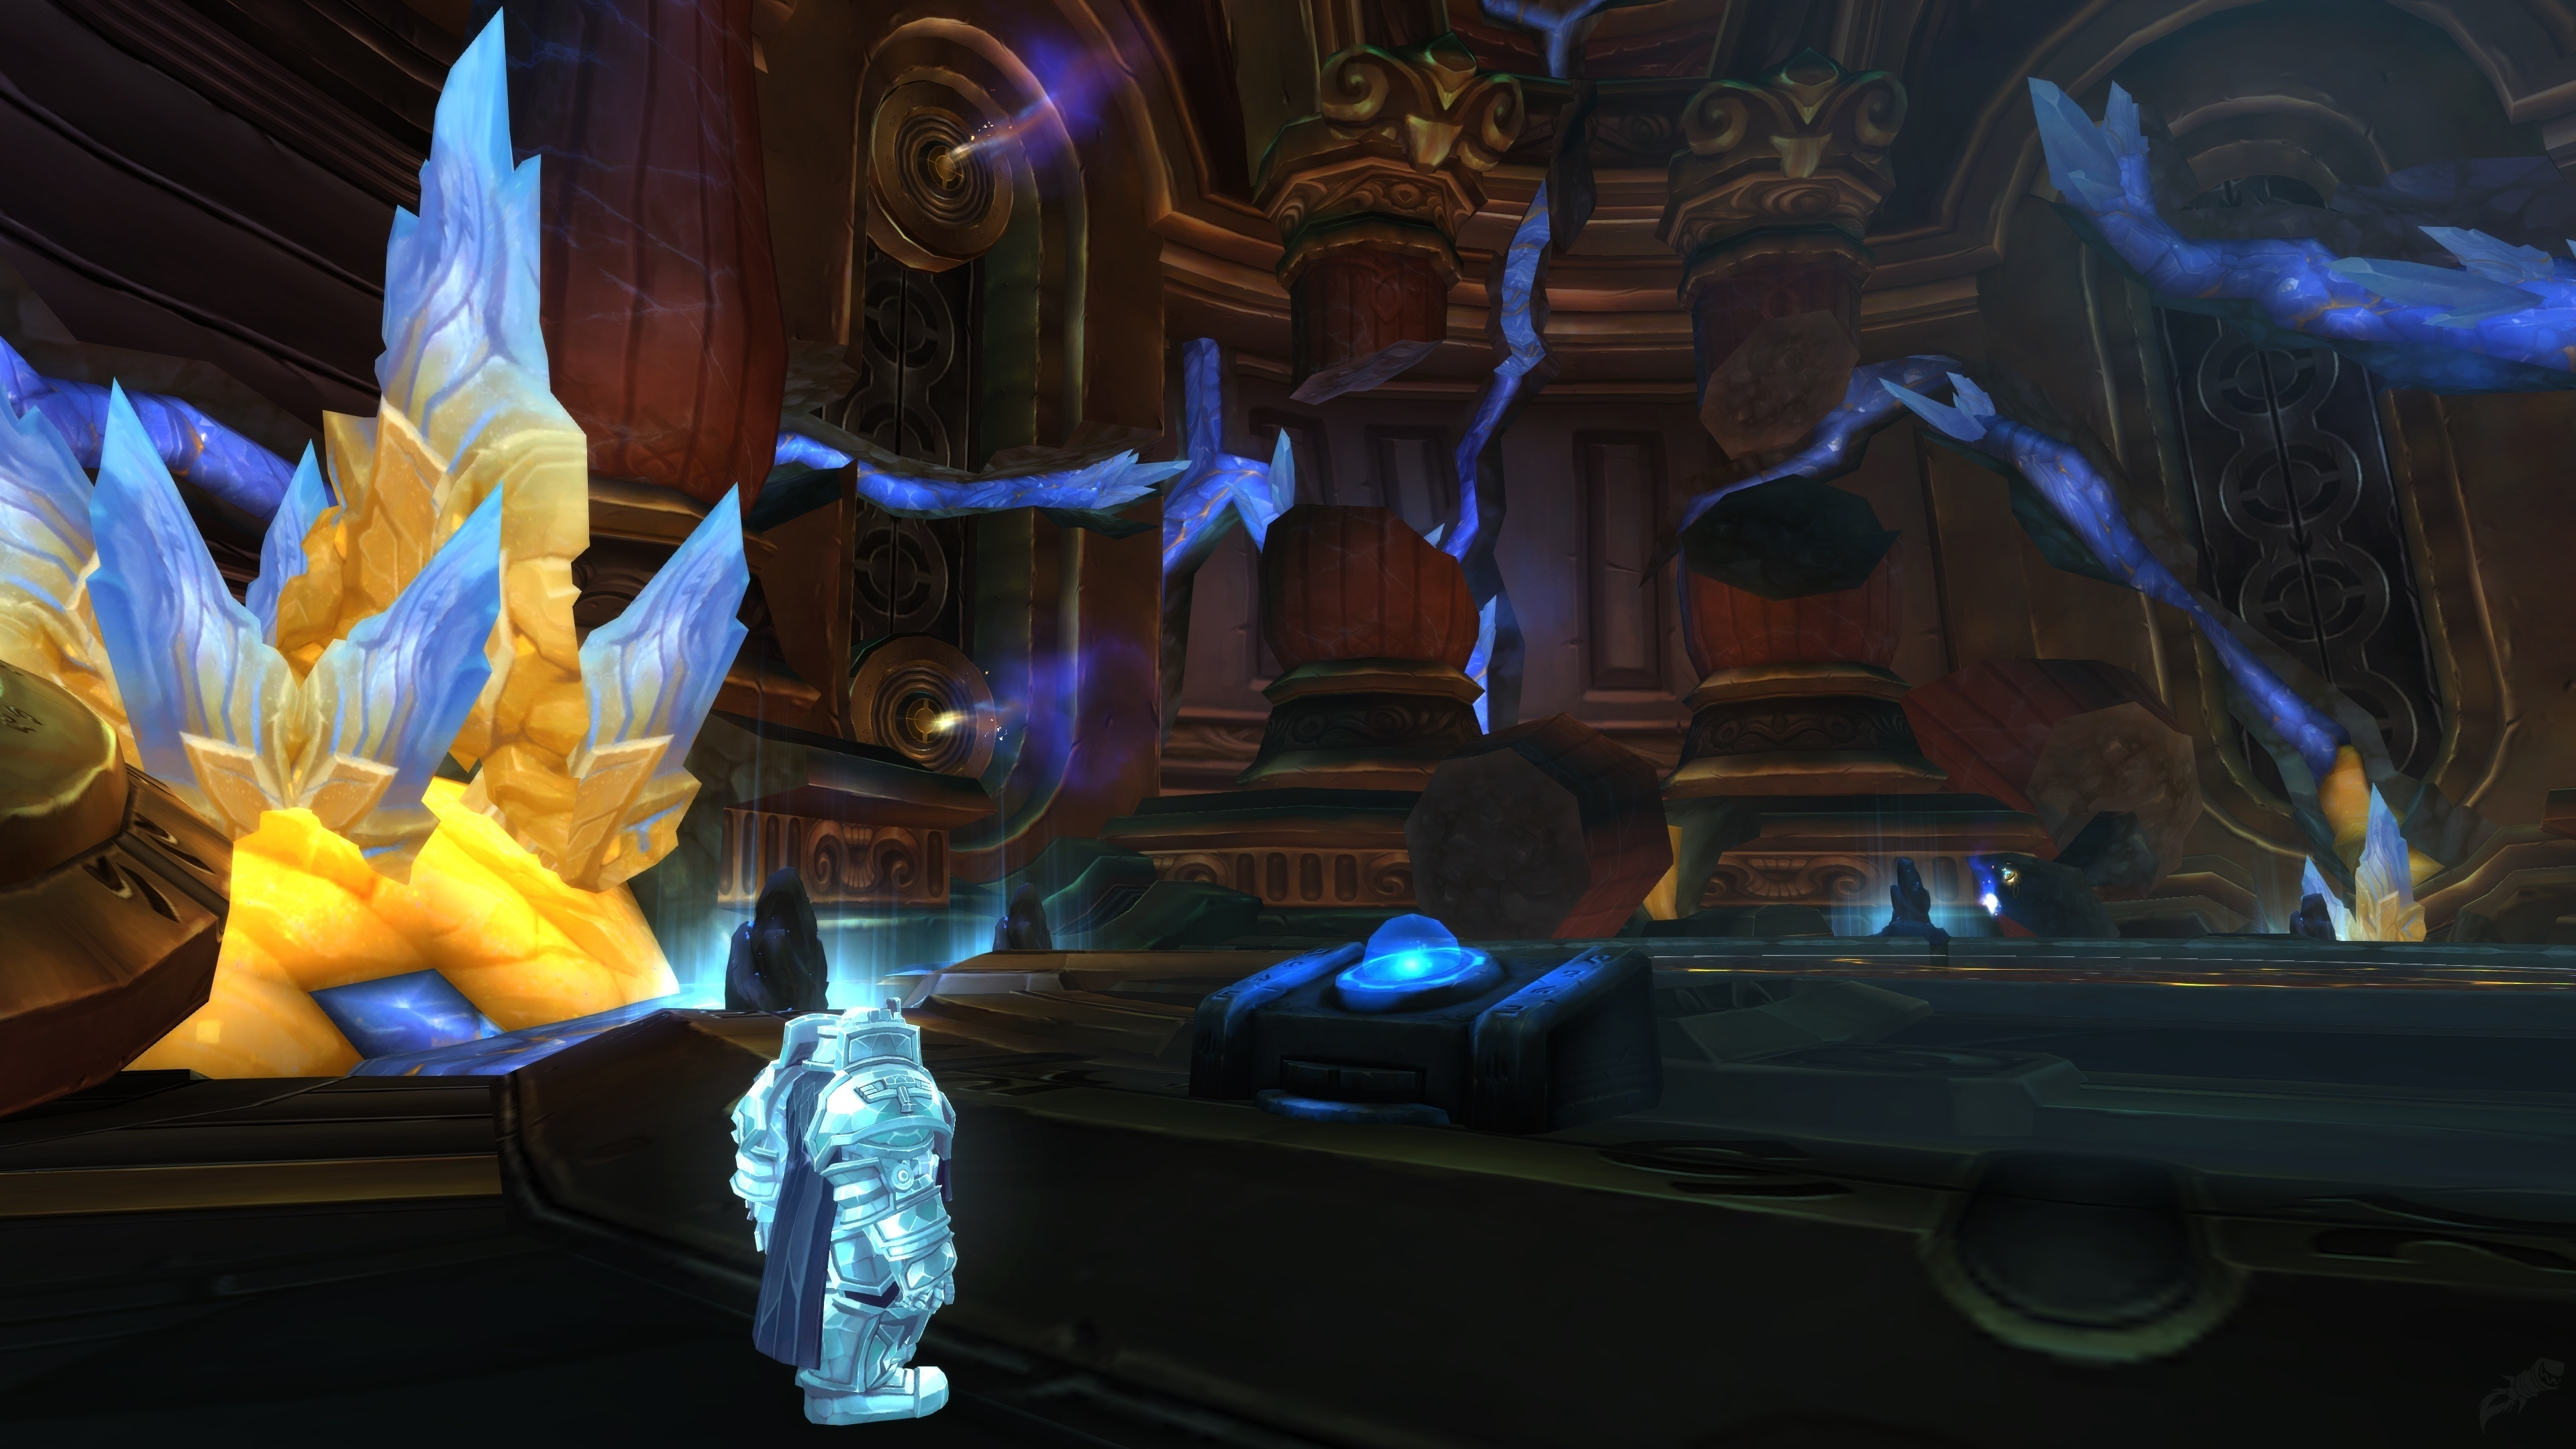 Upcoming Azerite Hotfixes - Changing Requirements for ilvl